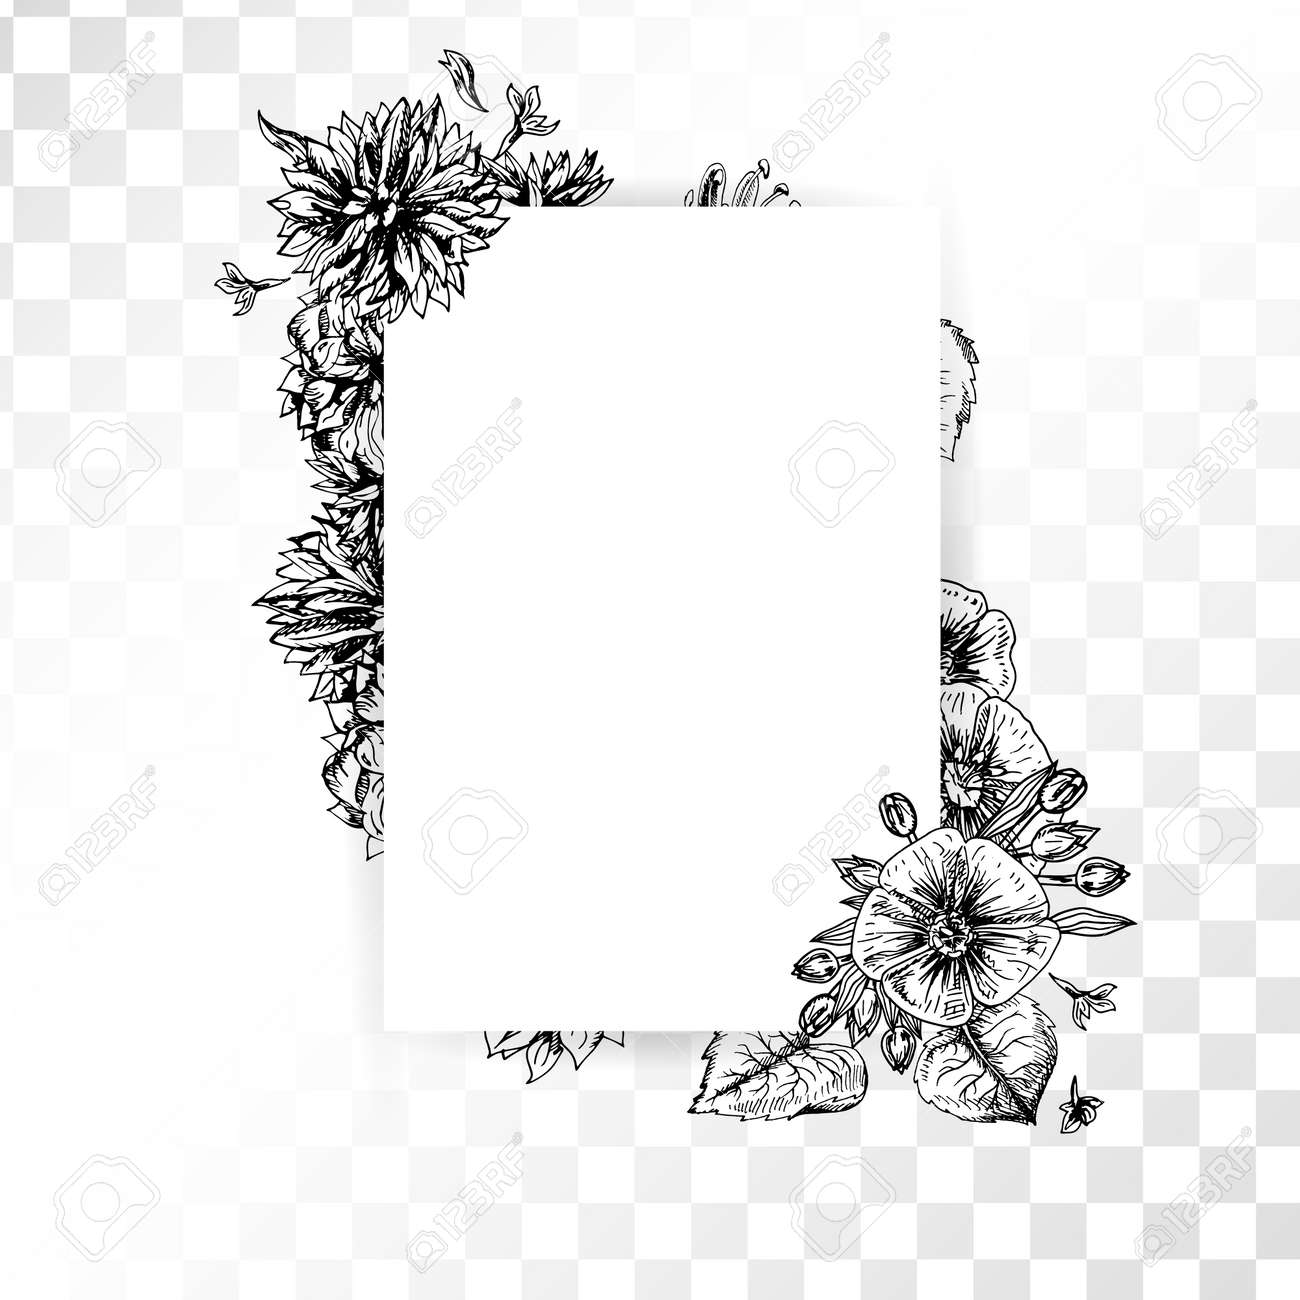 Hand Drawn Flower Frame On Transparent Background Retro Sketches Isolated Wedding Design Doodle